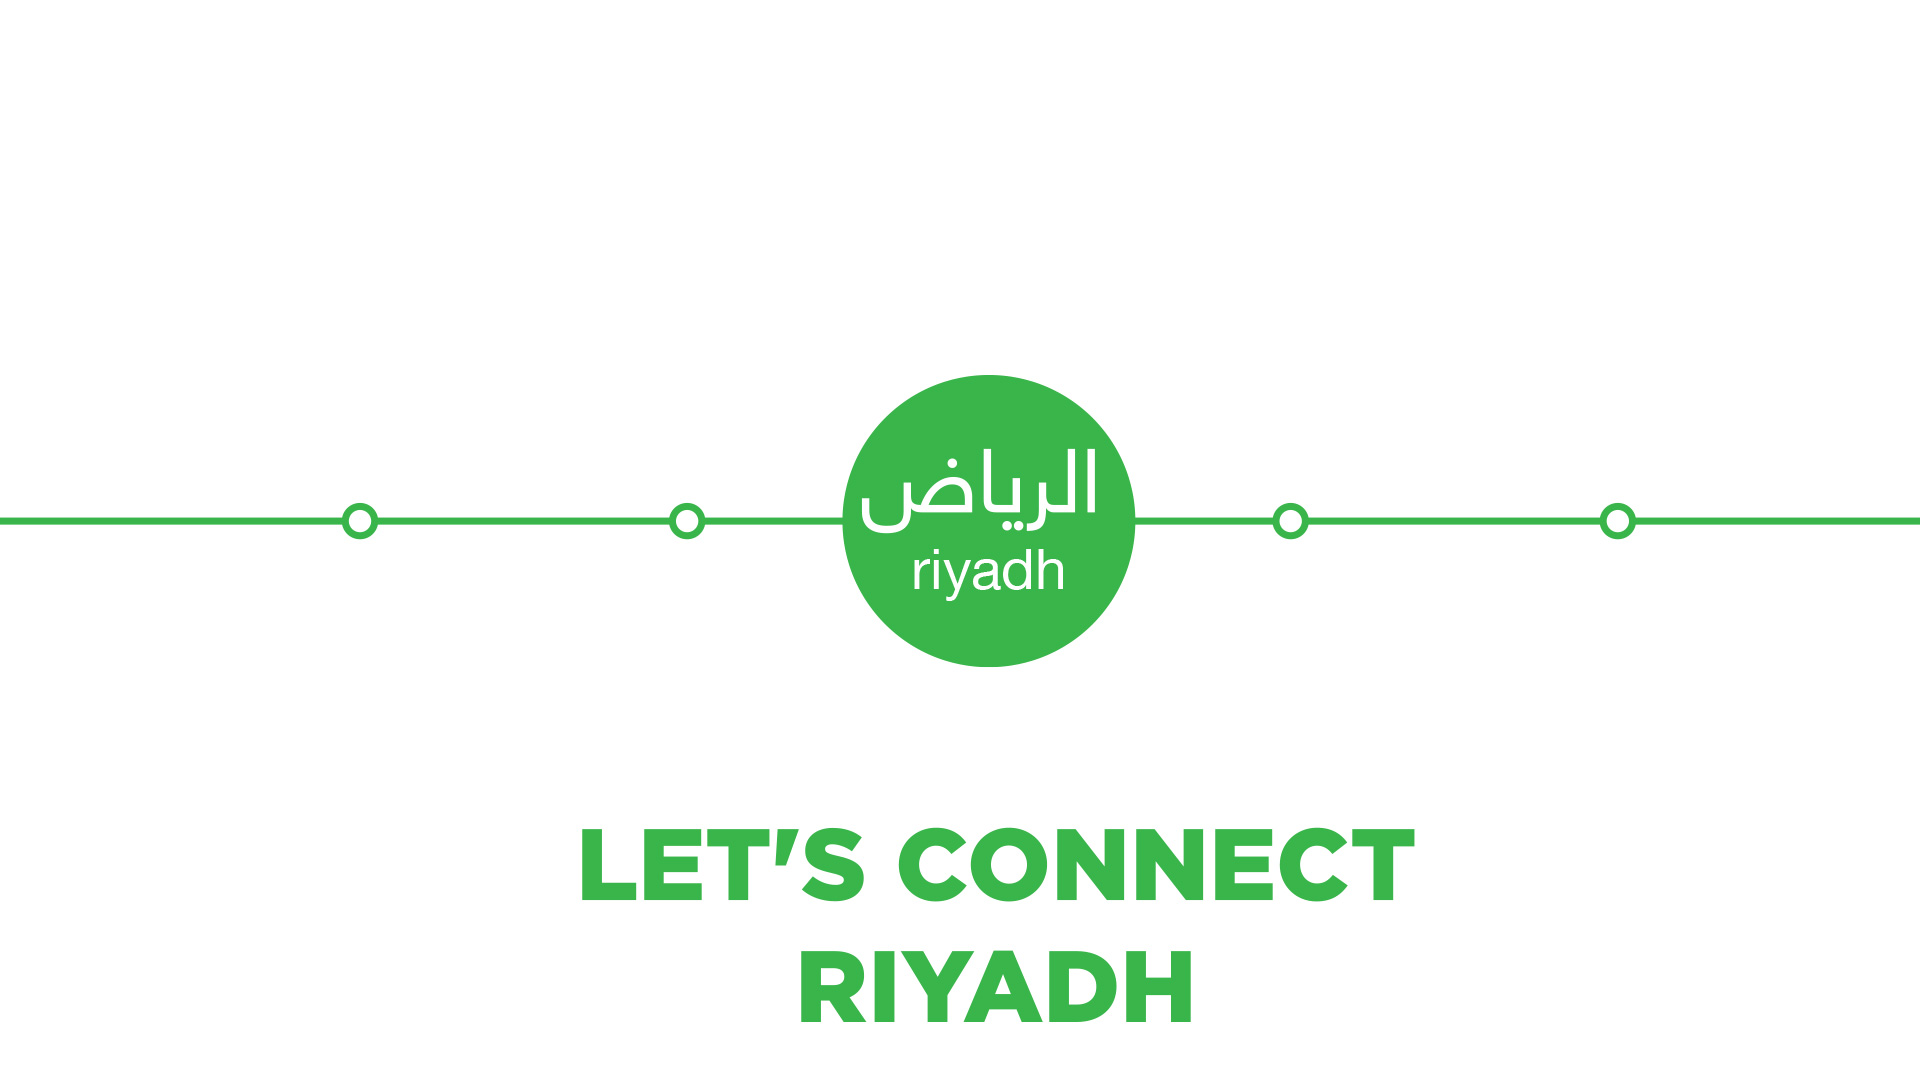 6RiyadhMetro_CommunicationIllustration6